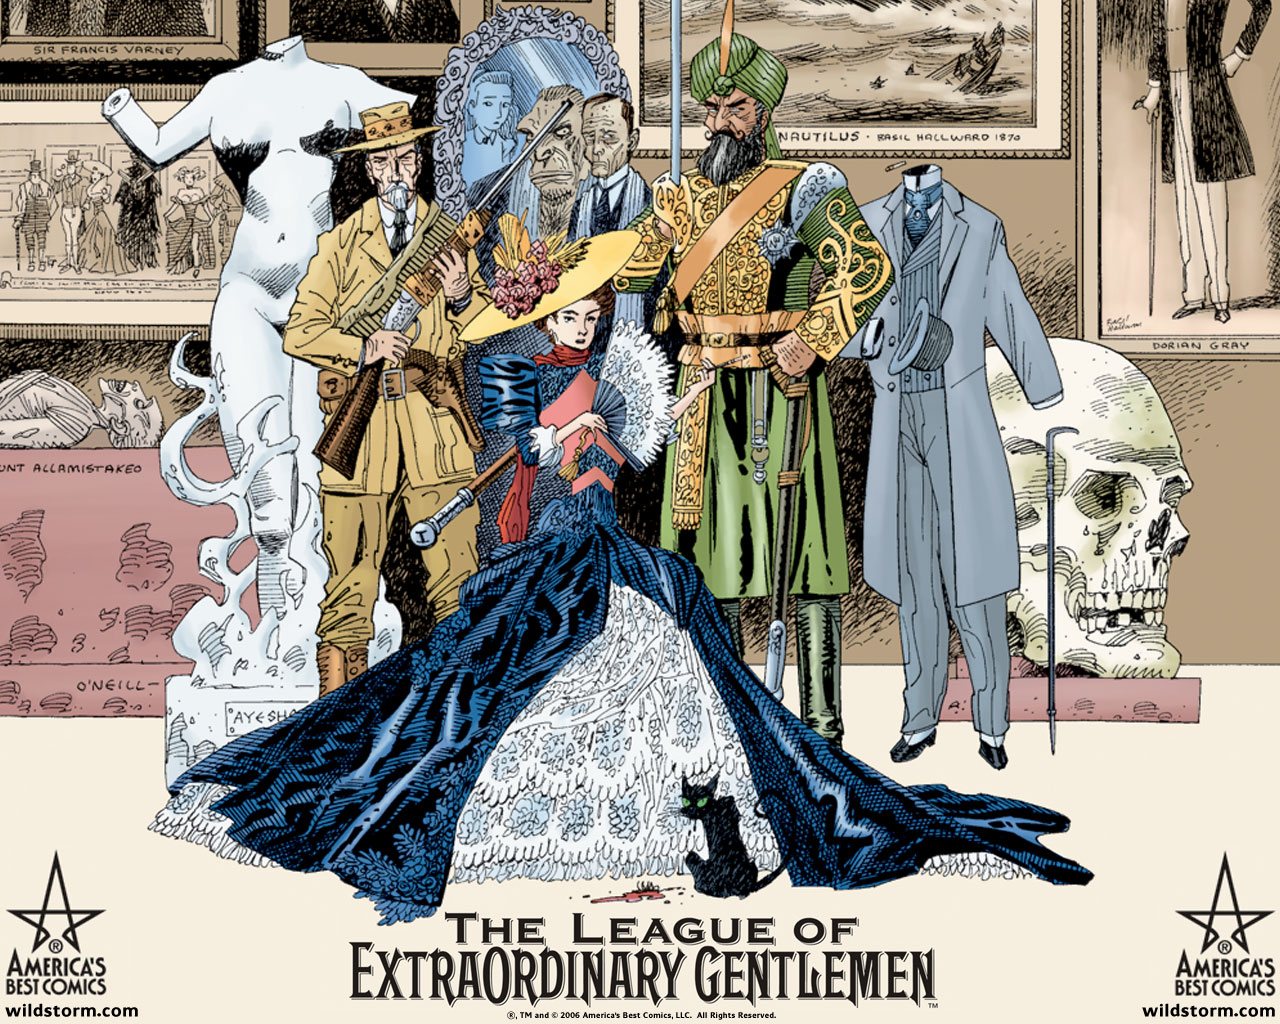 league of extraordinary gentlemen 20th century fox is taking another stab at turning alan moore and kevin o'neill's the league of extraordinary gentlemen into a film franchise, it was reported today.